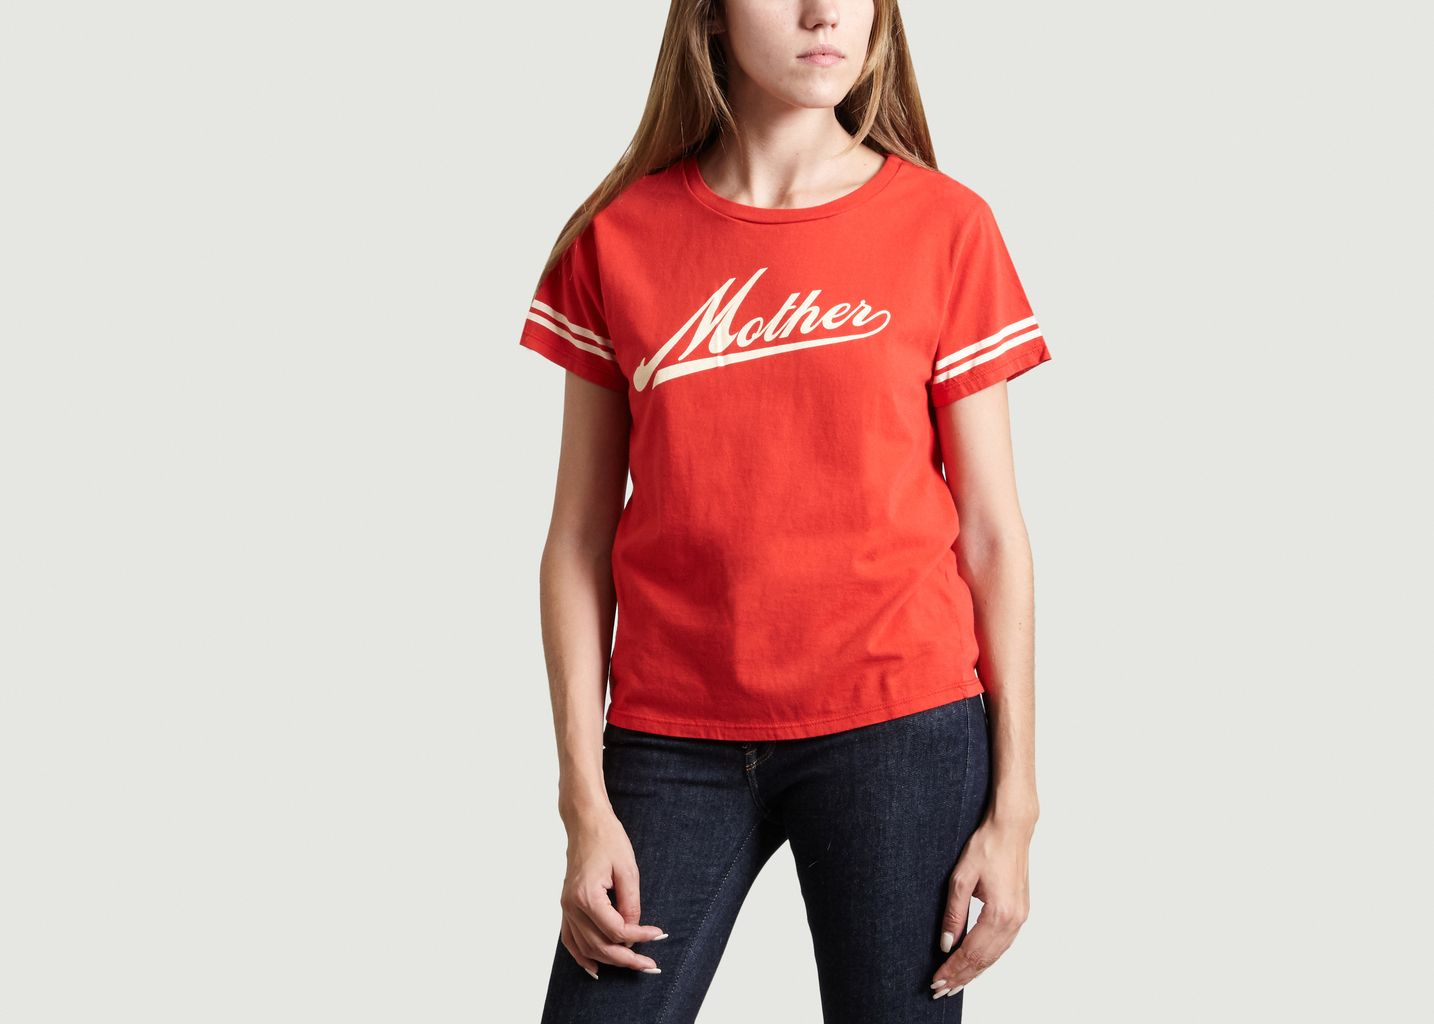 T-Shirt The Lil - Mother